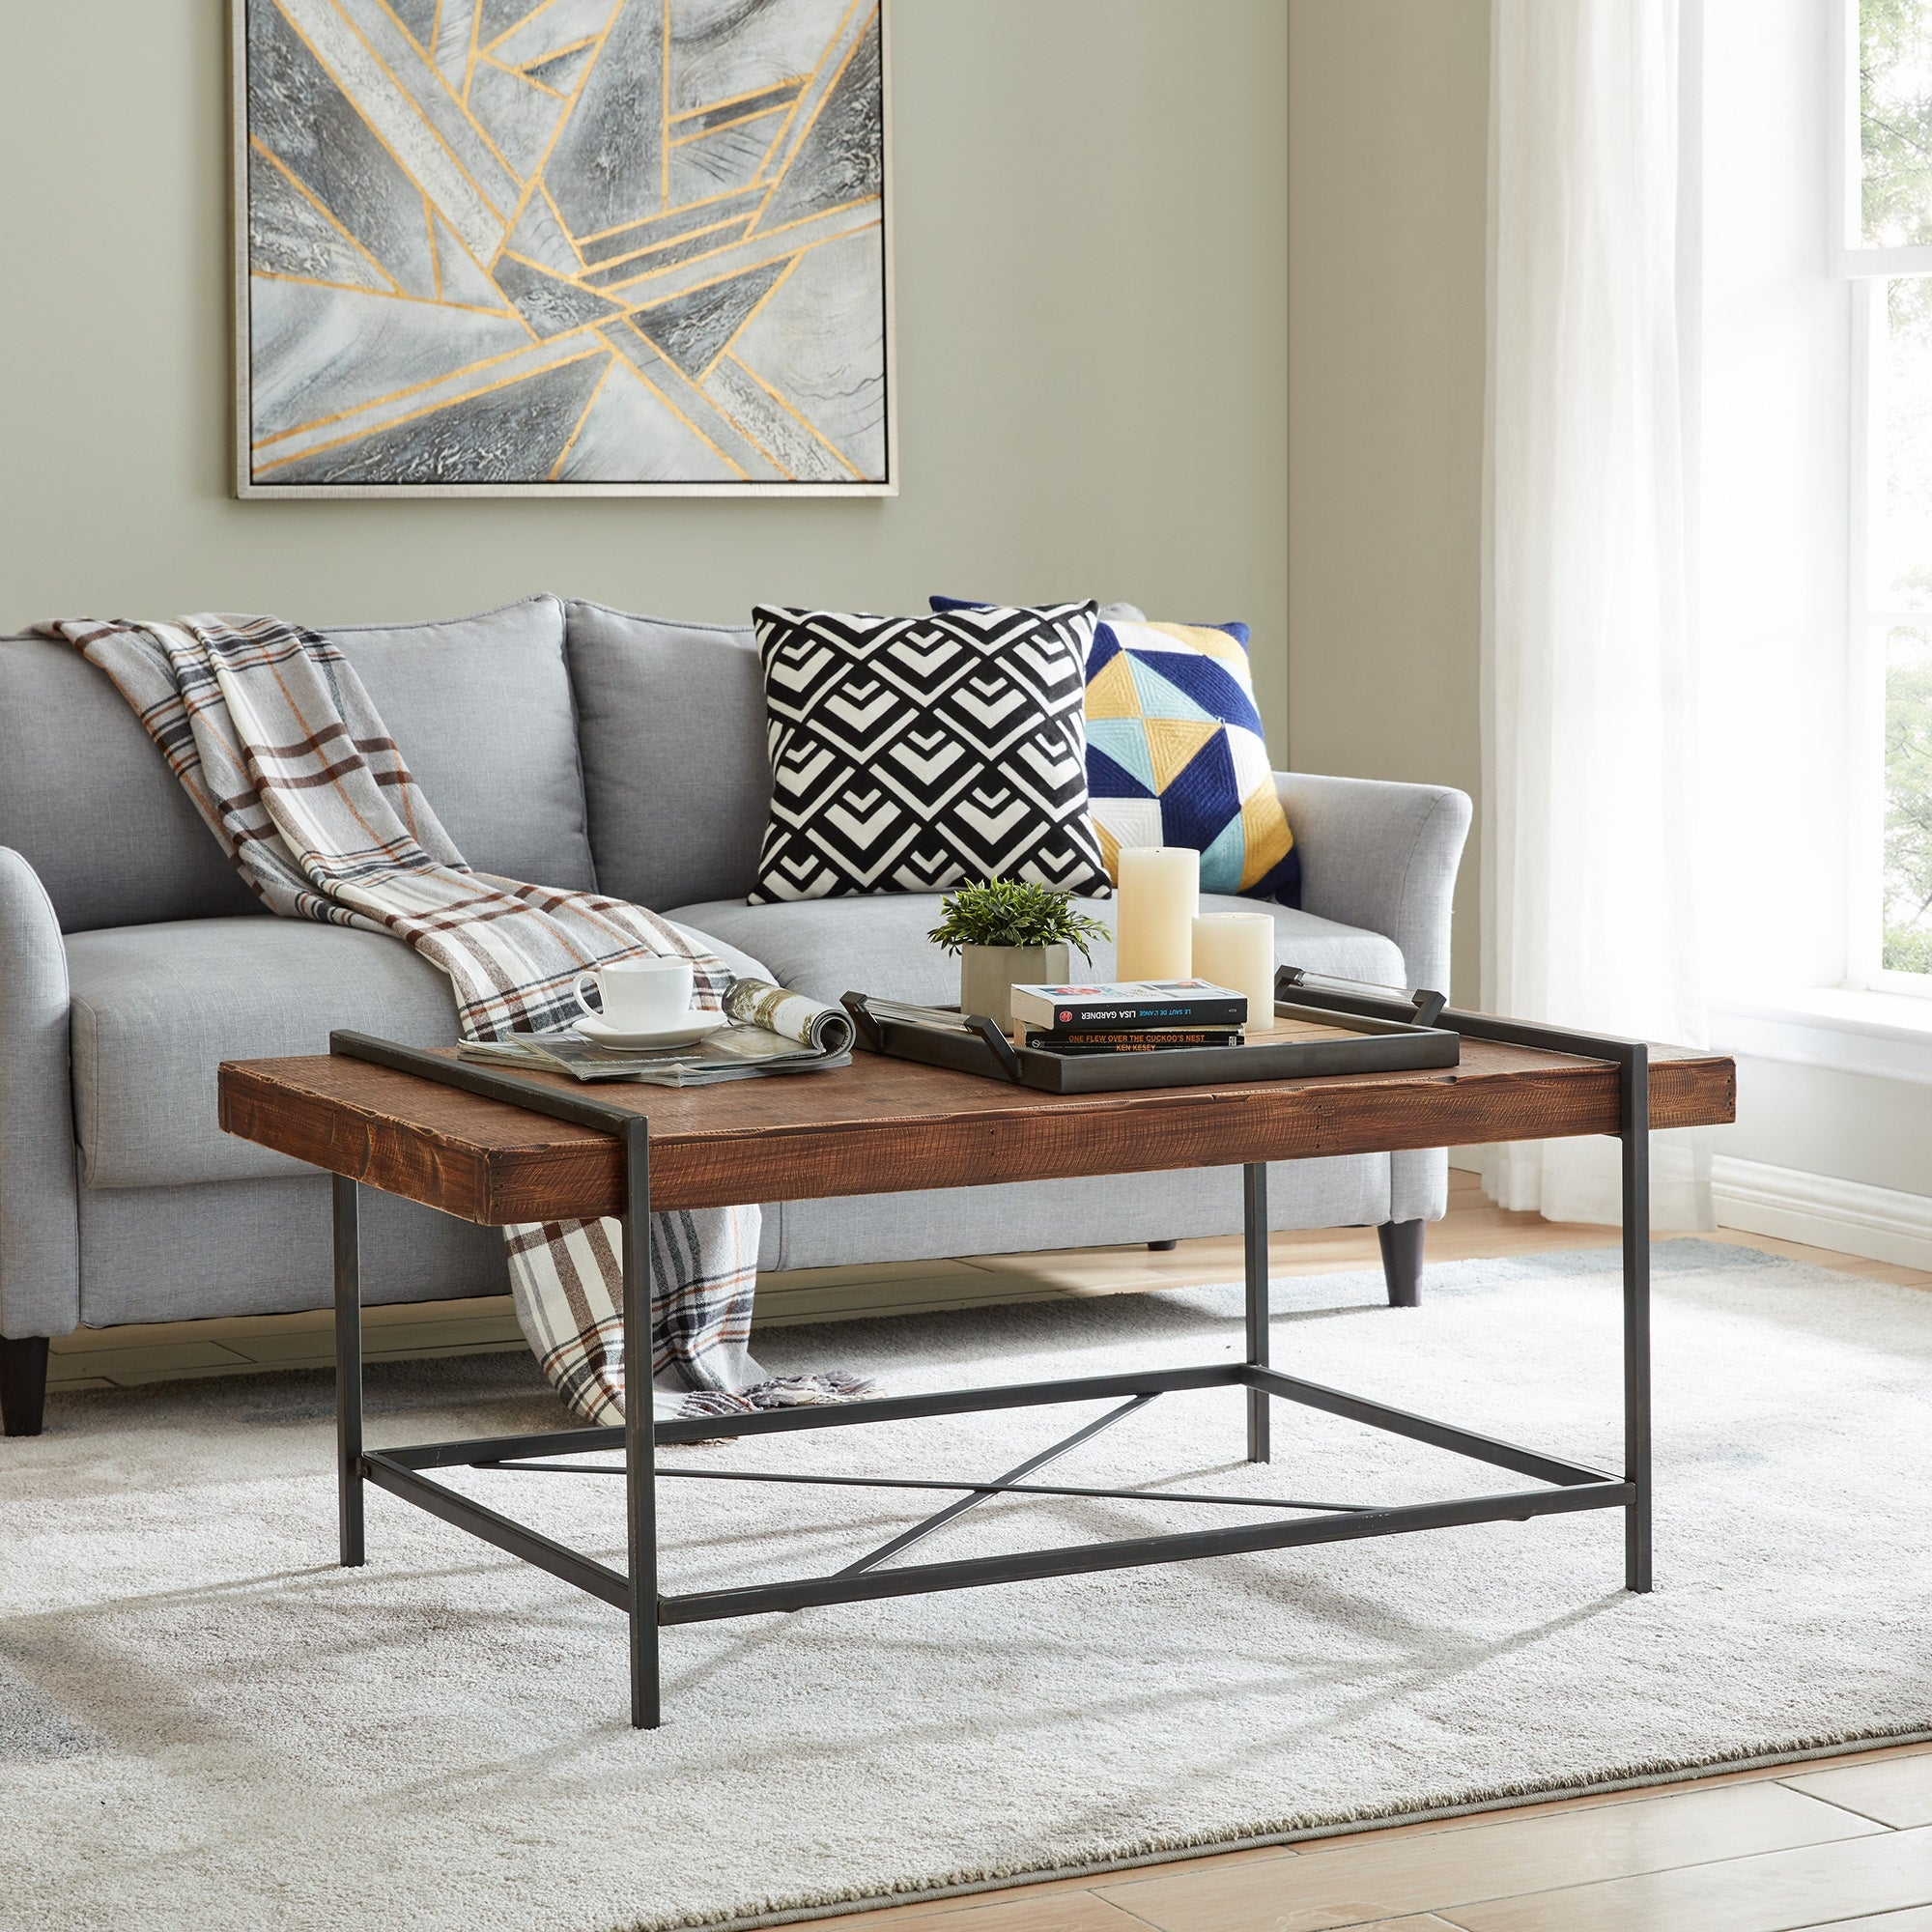 Firstime Co Cullen Rustic Farmhouse Coffee Table American Crafted Weathered Brown Fir Wood 47 X 25 X 20 In Overstock 31804912